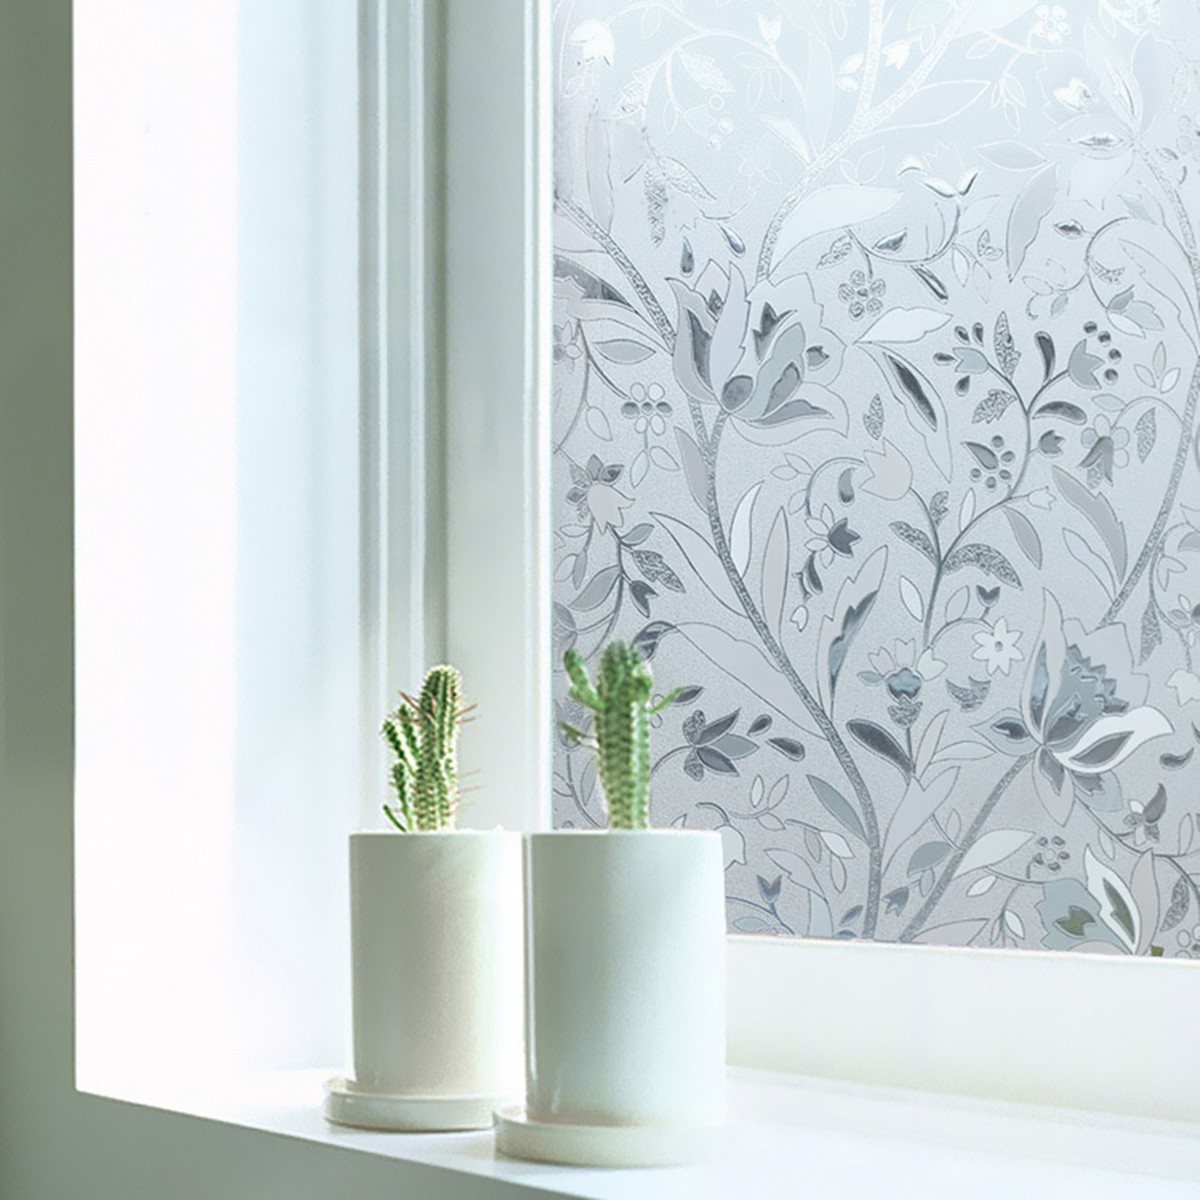 Waterproof PVC Frosted Window Sticker Glass Film Privacy Home - Window stickers for home privacy